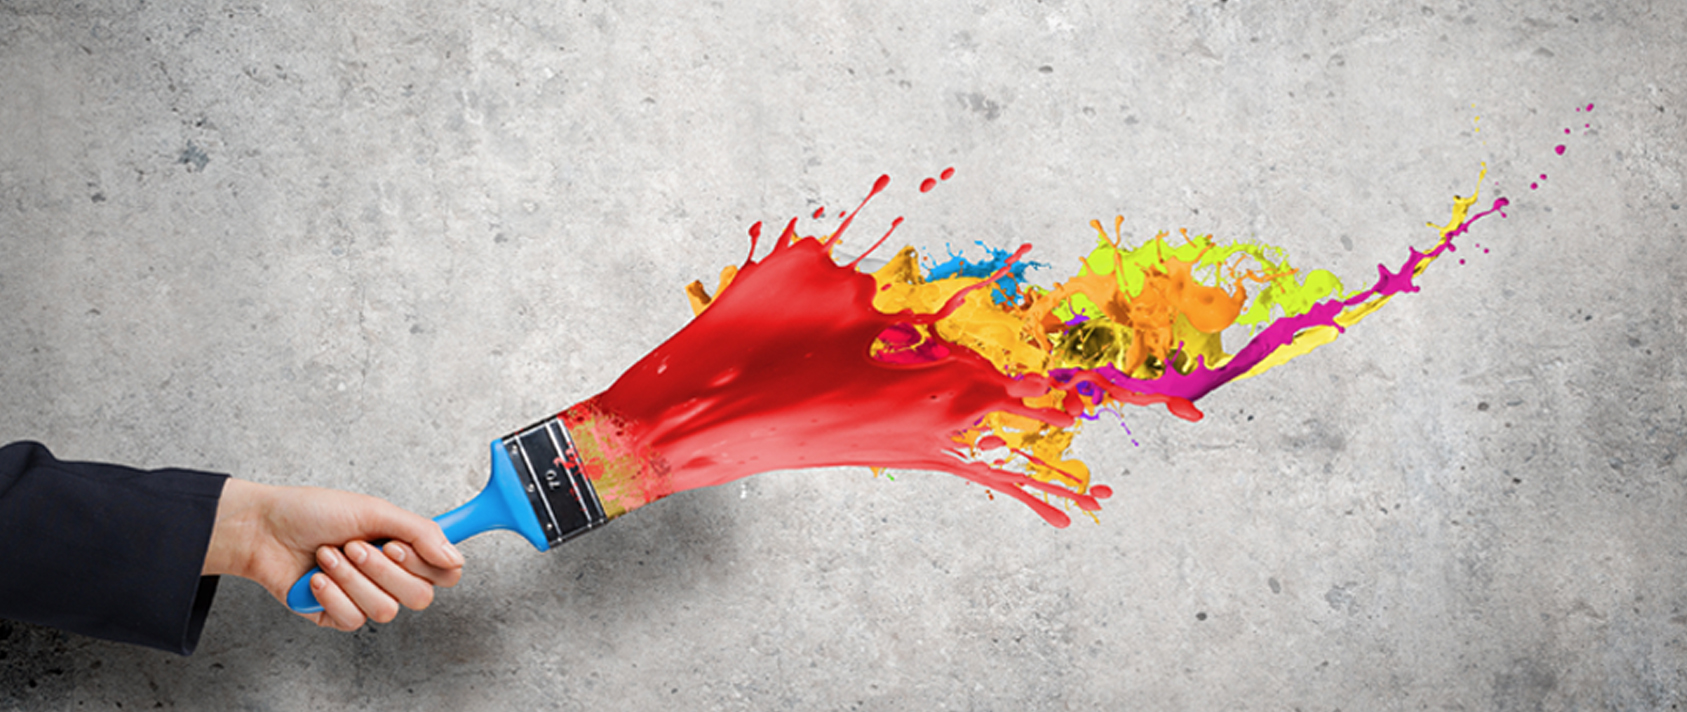 Why Graphic Design Is Essential For a Enterprise